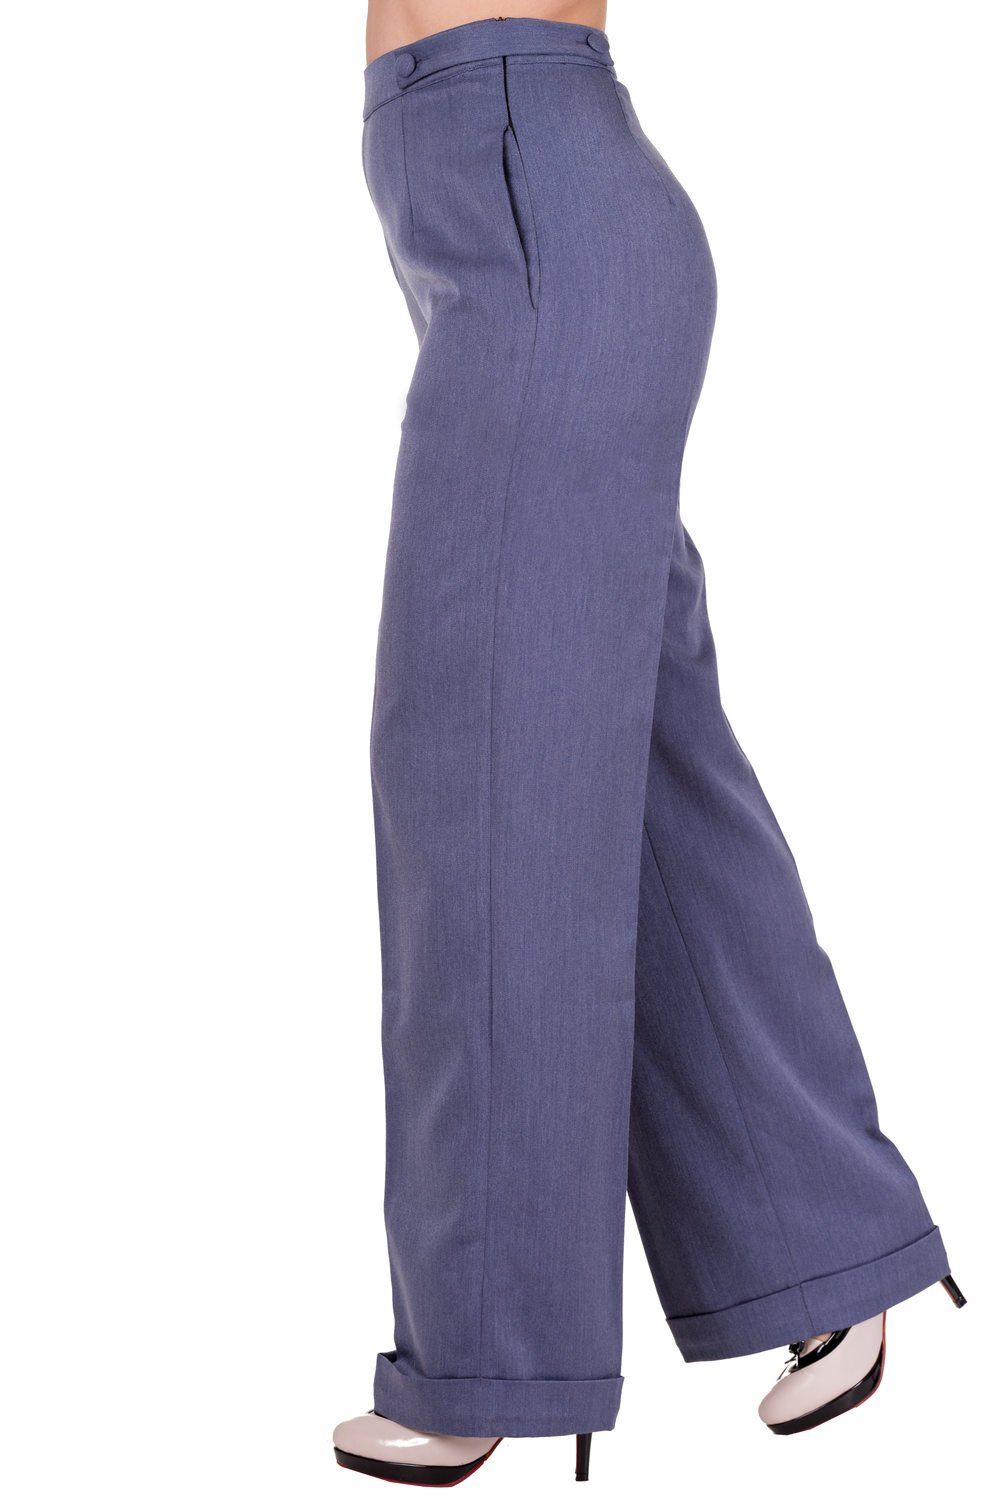 Rosie the Riveter Costume & Outfit Ideas Denim Banned Party On Trousers - 26 to 34 Inch Waist $33.82 AT vintagedancer.com